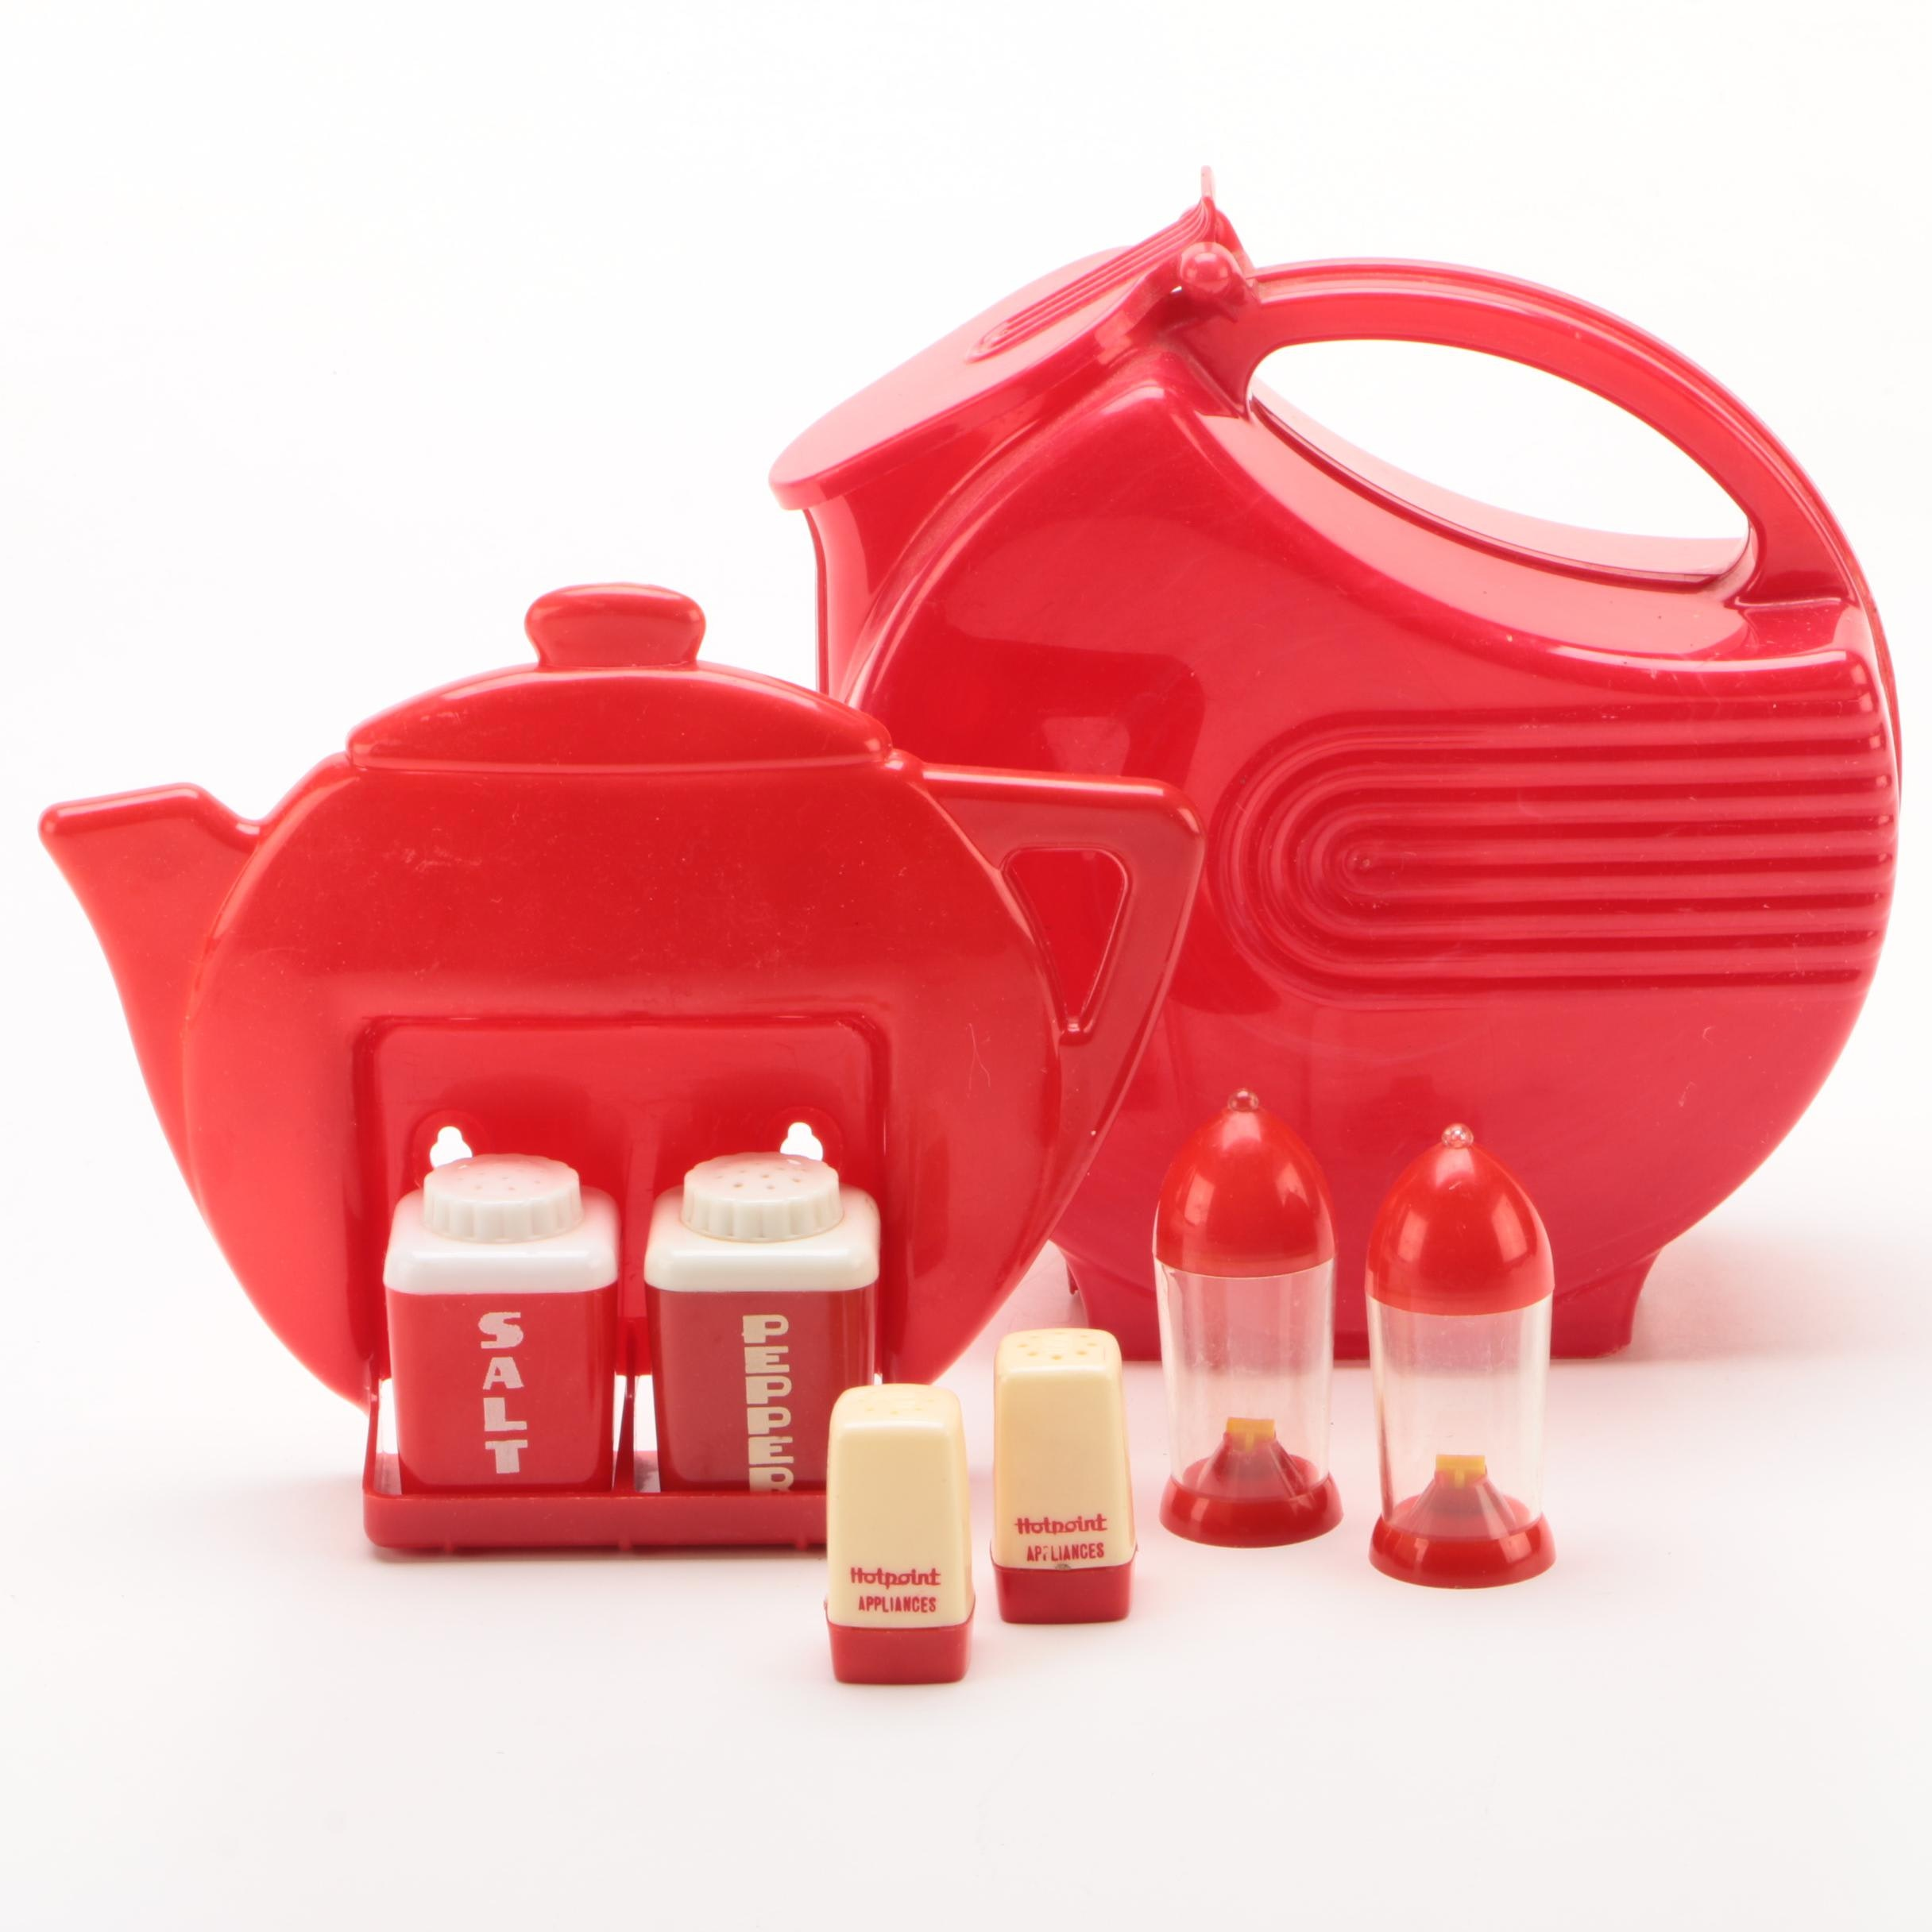 Burrite Pitcher with Red Plastic Shakers, Mid-Century